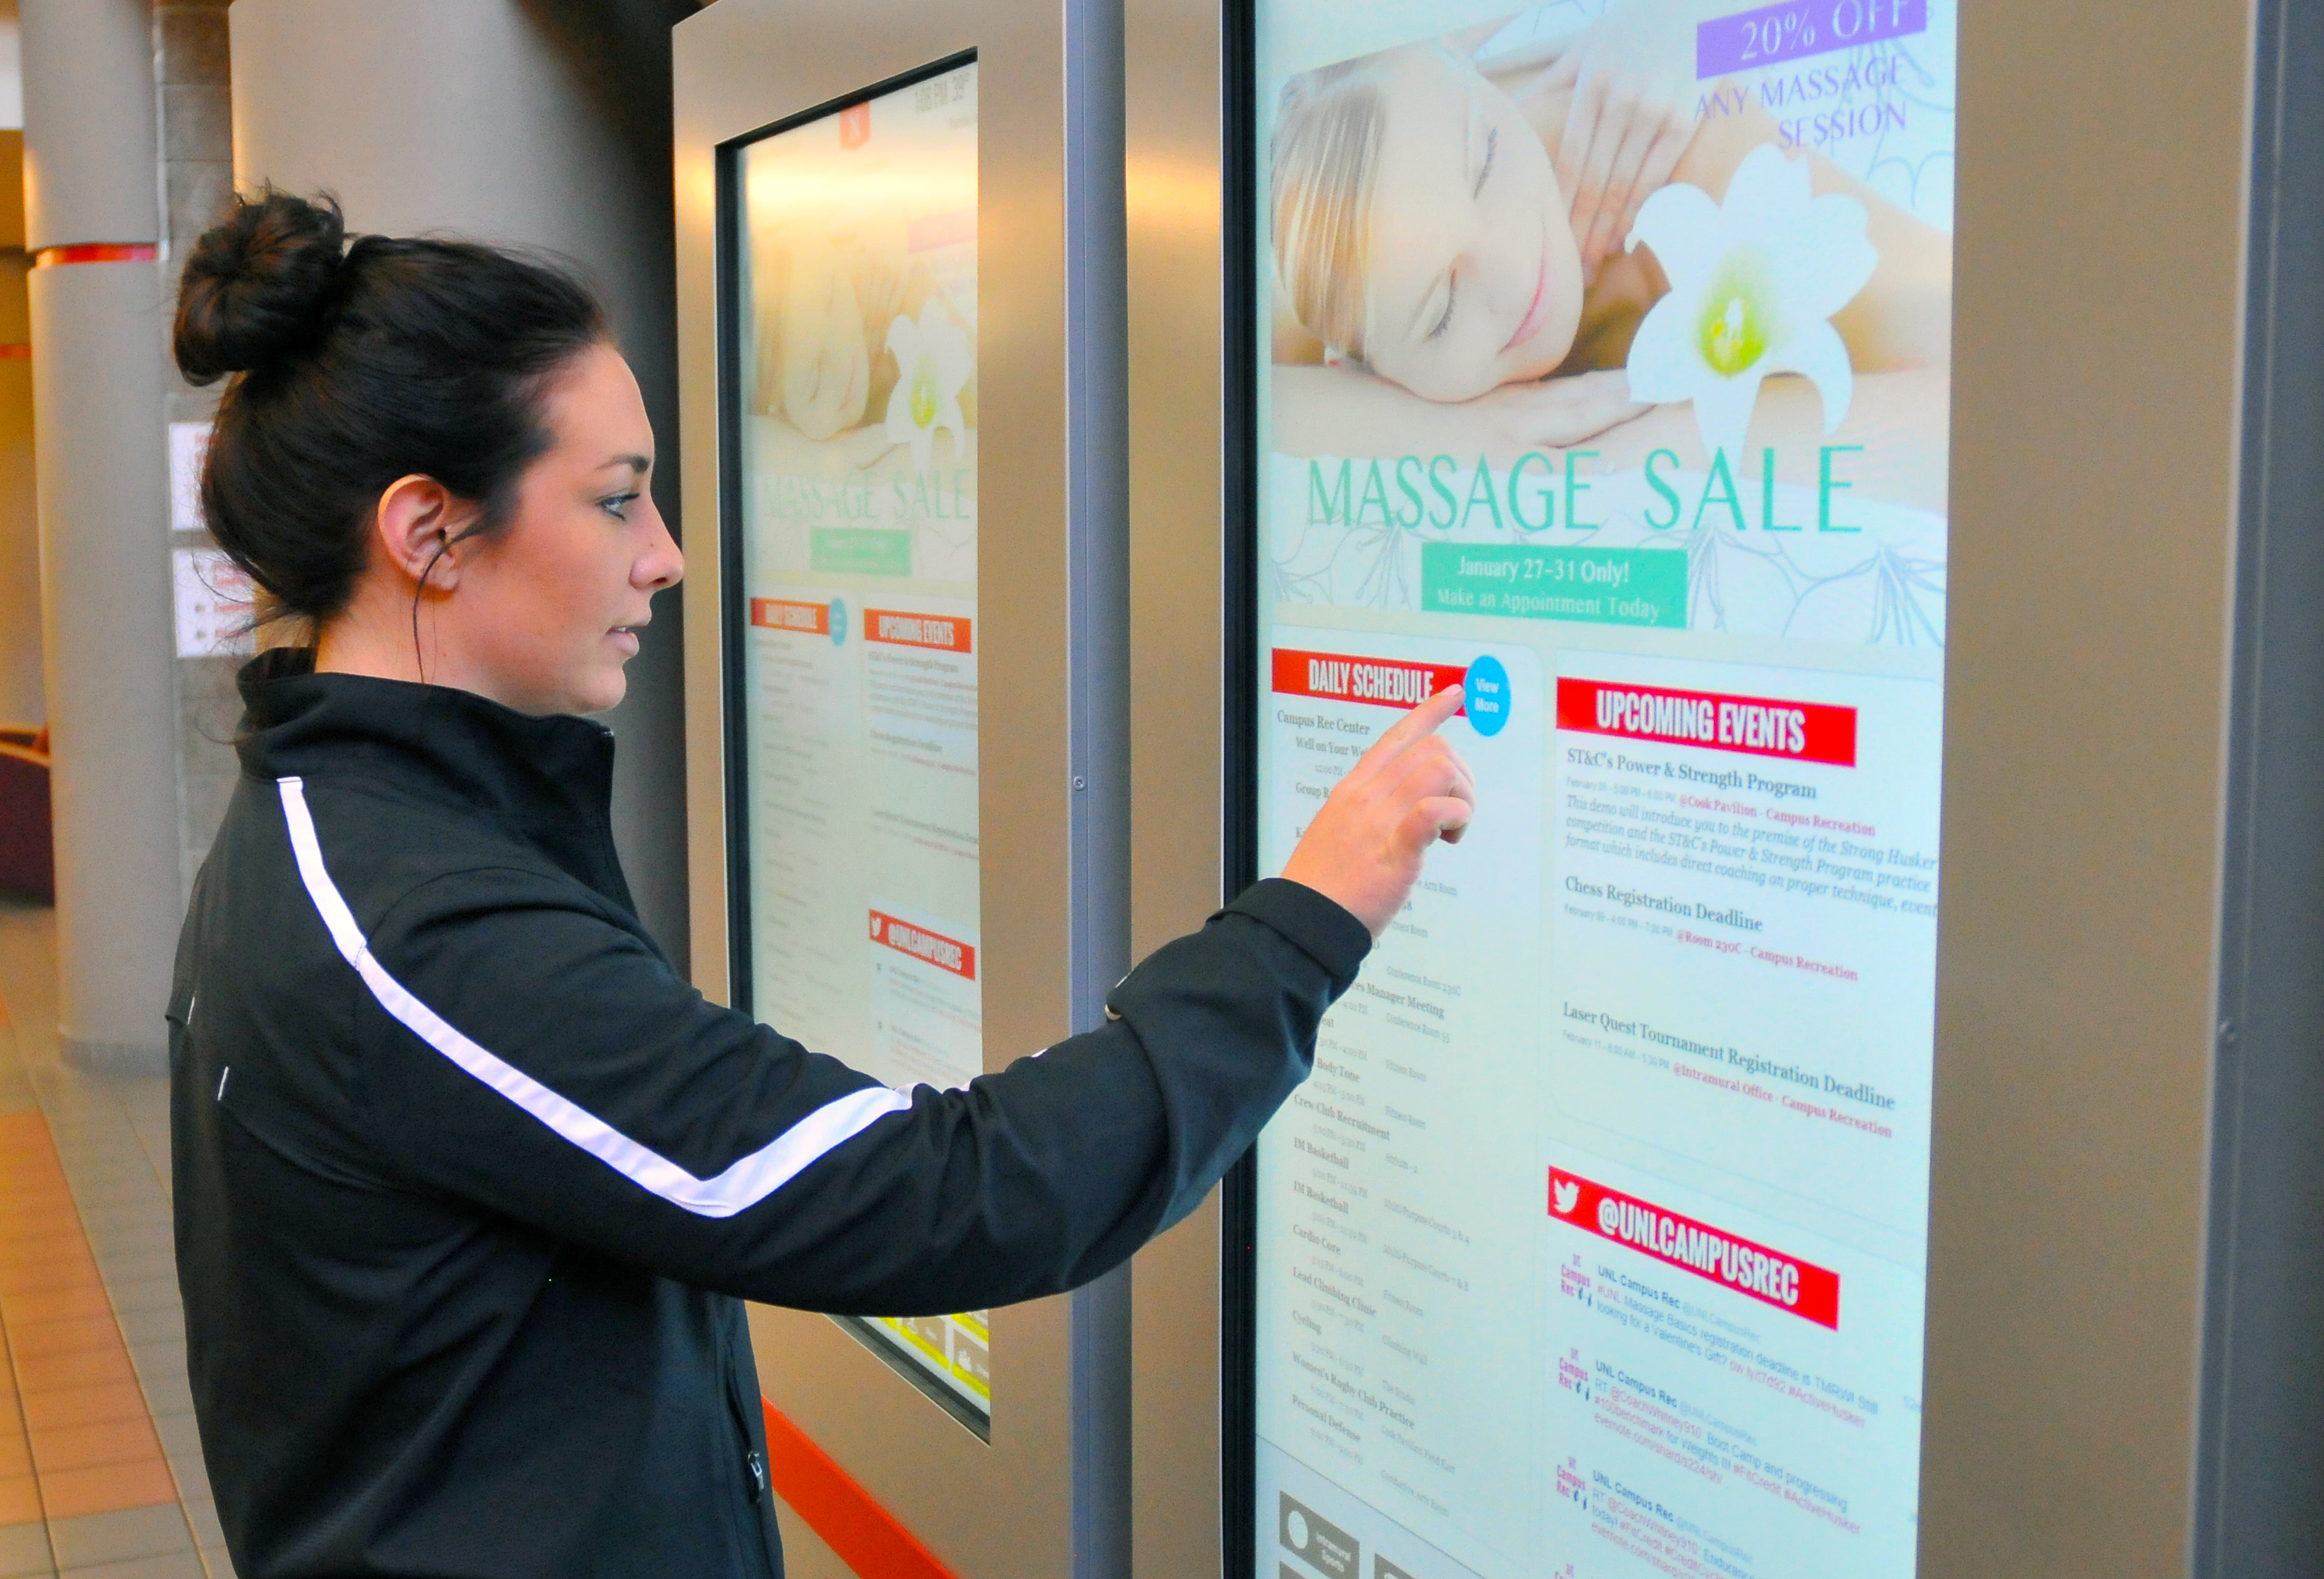 Digital Signage Use Expands Across Campus Nebraska Today